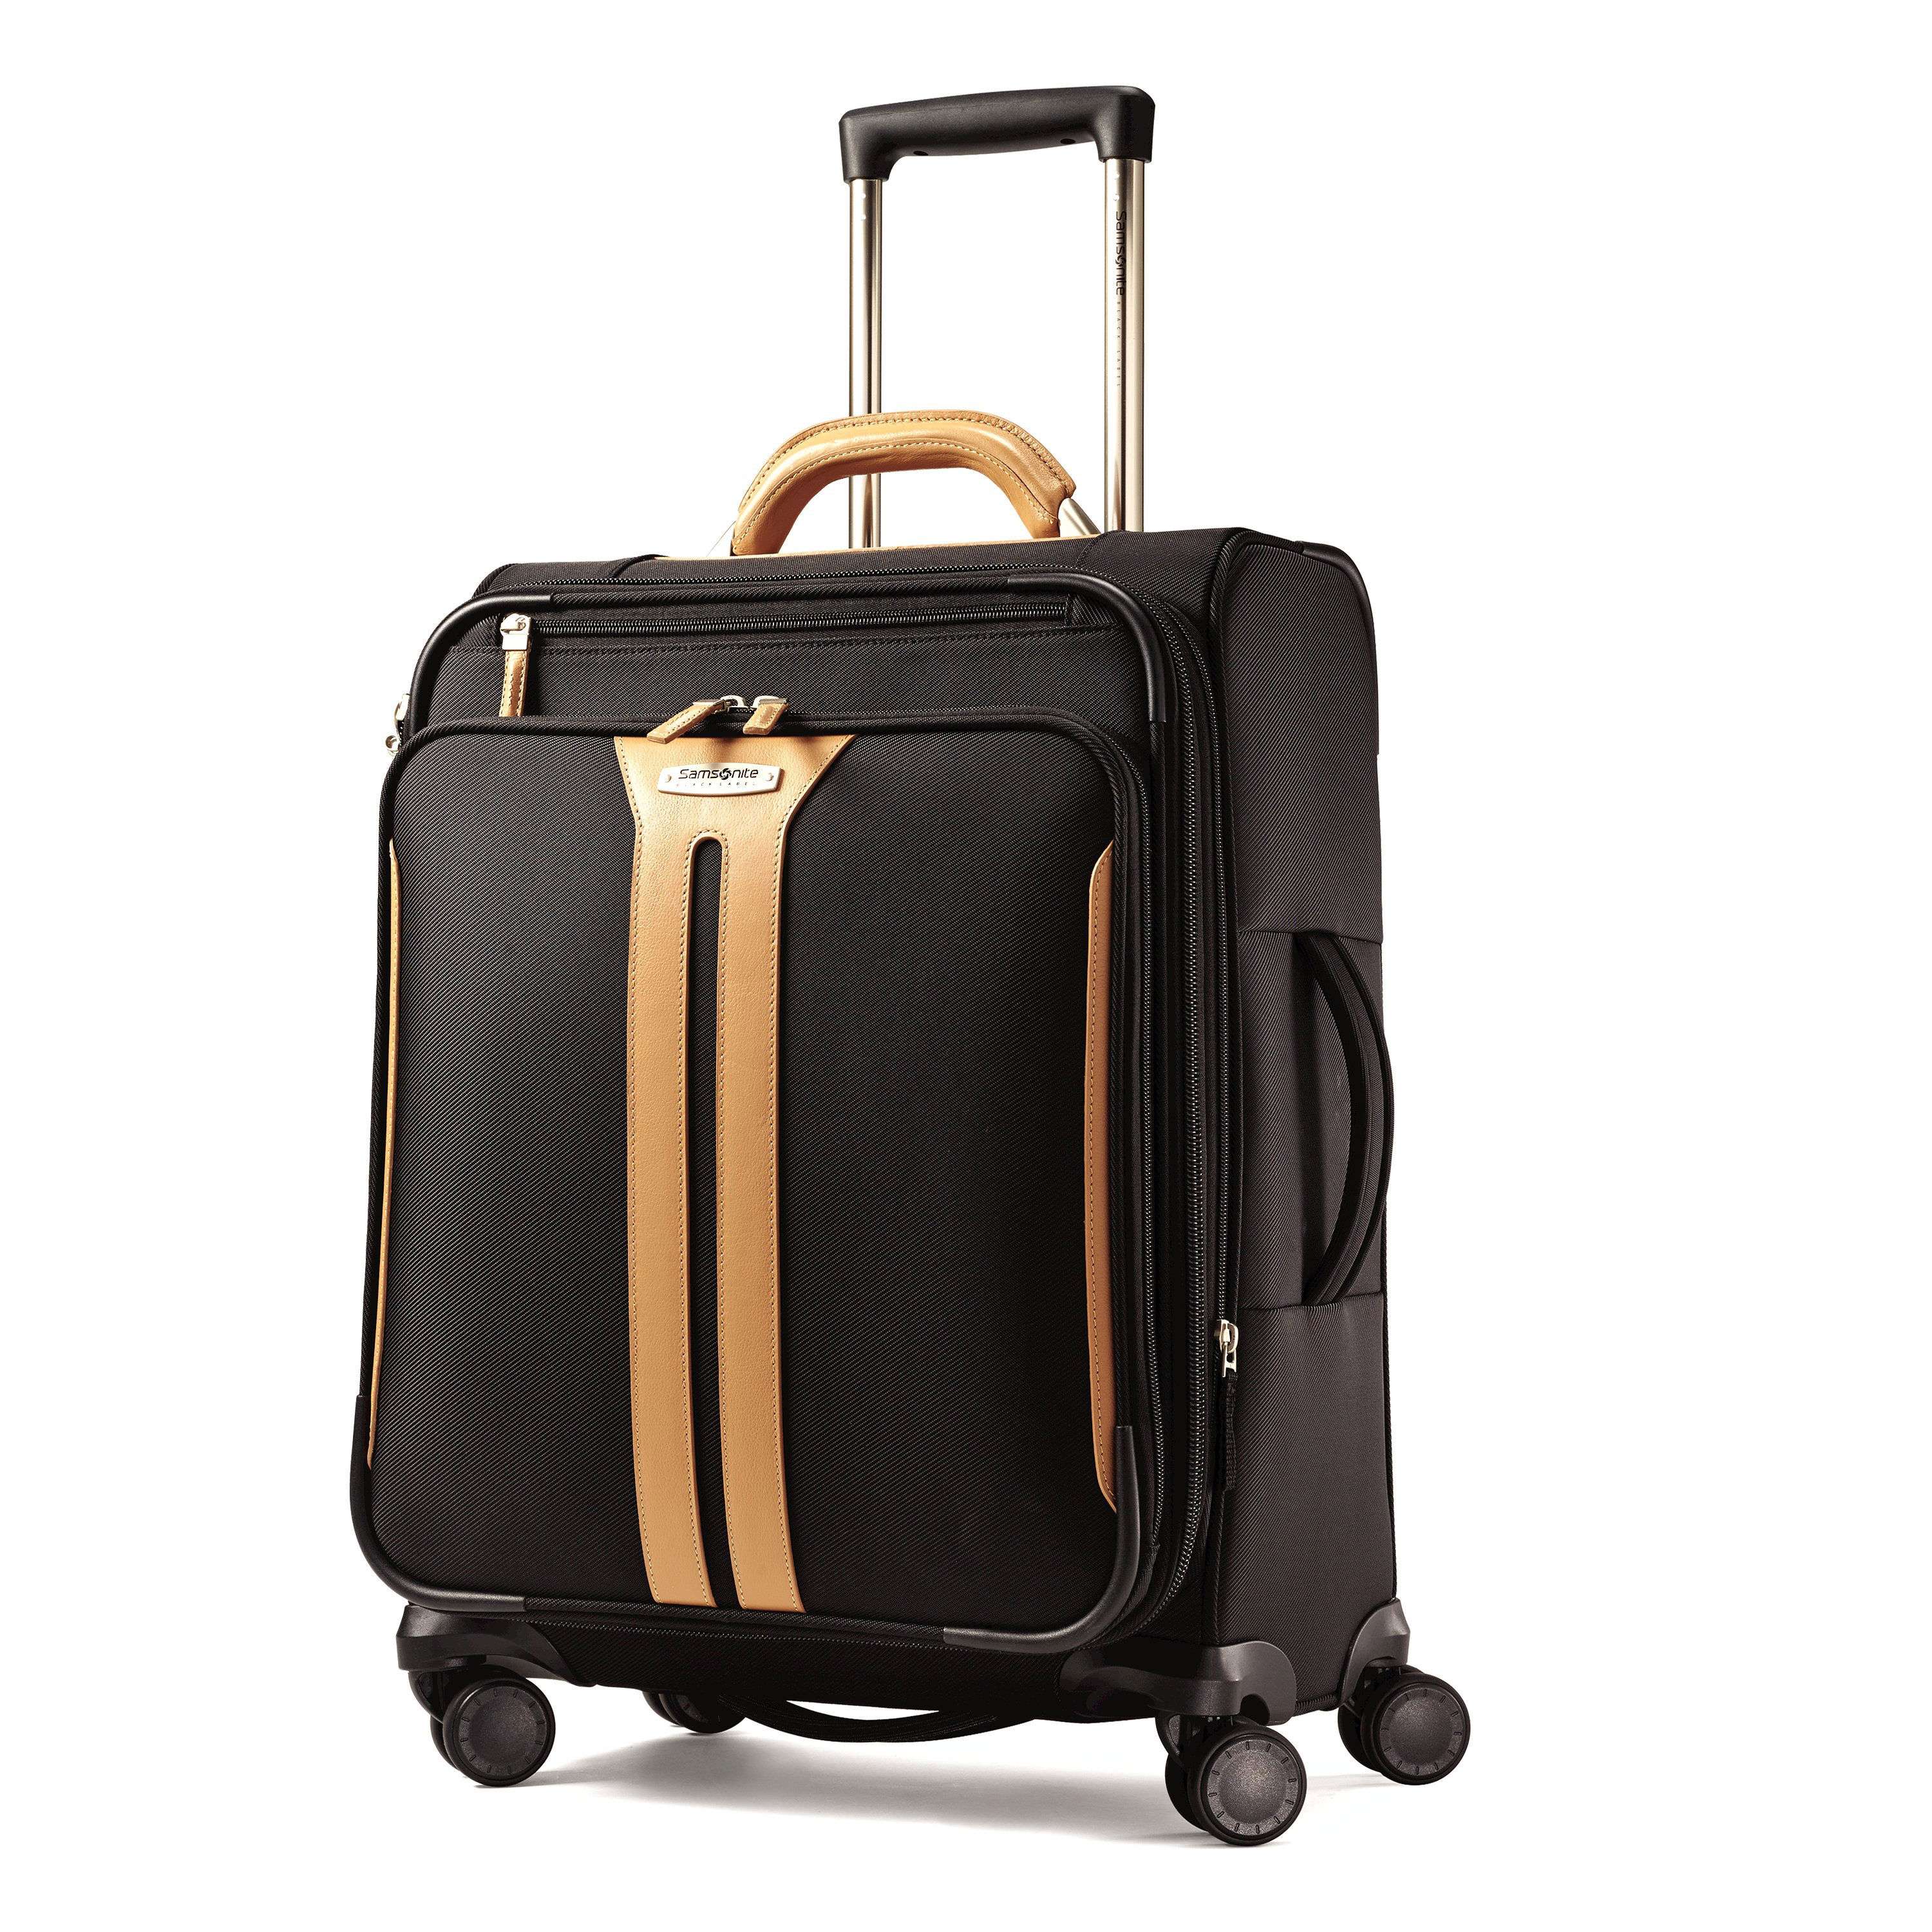 Color : Black, Size : 26 Inch Trolley Case-24//26 Inch Aluminum Frame Aircraft Wheel Trolley Case Student Luggage Solid Color Password Suitcase Business Travel Check Box 4 Color Optional